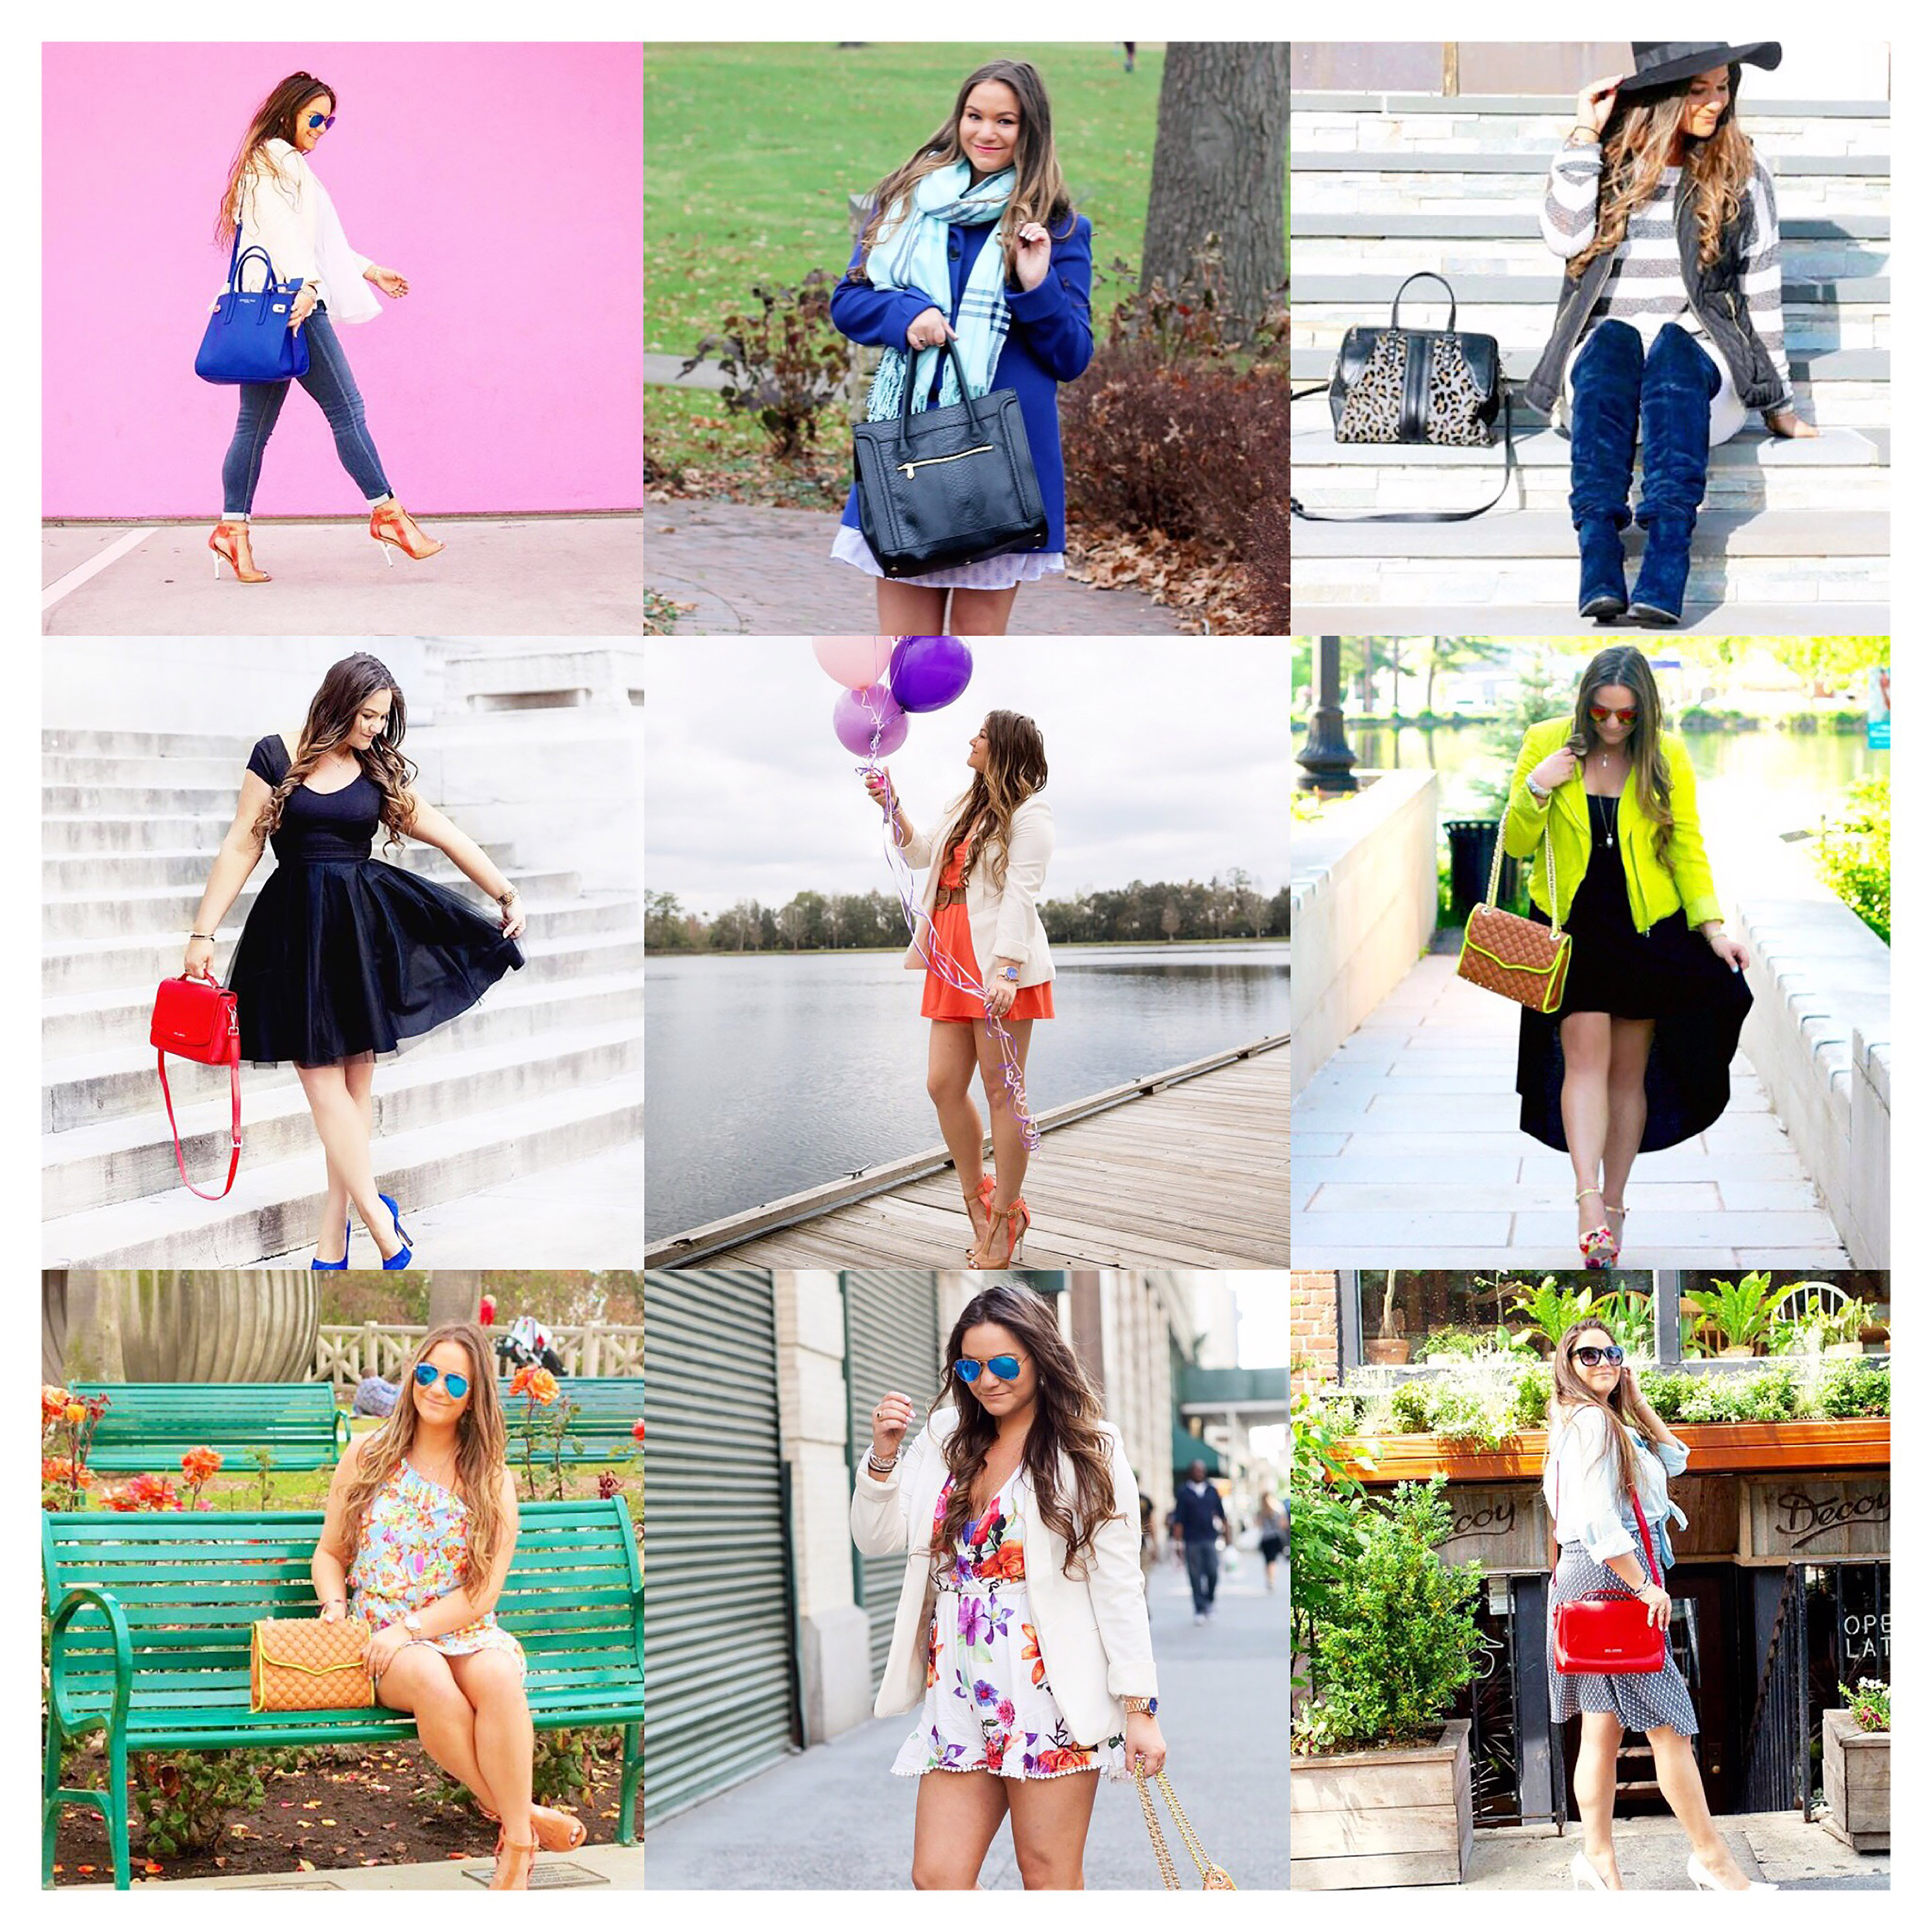 missyonmadison, melissa tierney, fashion blog, fashion blogger, best of 2015, nine best of 2015, 9 best of 2015, top 9 of 2015, style blog, outfit inspo, outfit goals, tulle skirt, romper, birthday outfit, nyc style, la style, vera bradley, colored heels, just fab, shoedazzle, outfit trends, asos, red lace up flats, new balance sneakers, black maxi dress, carolinna espinosa heels,